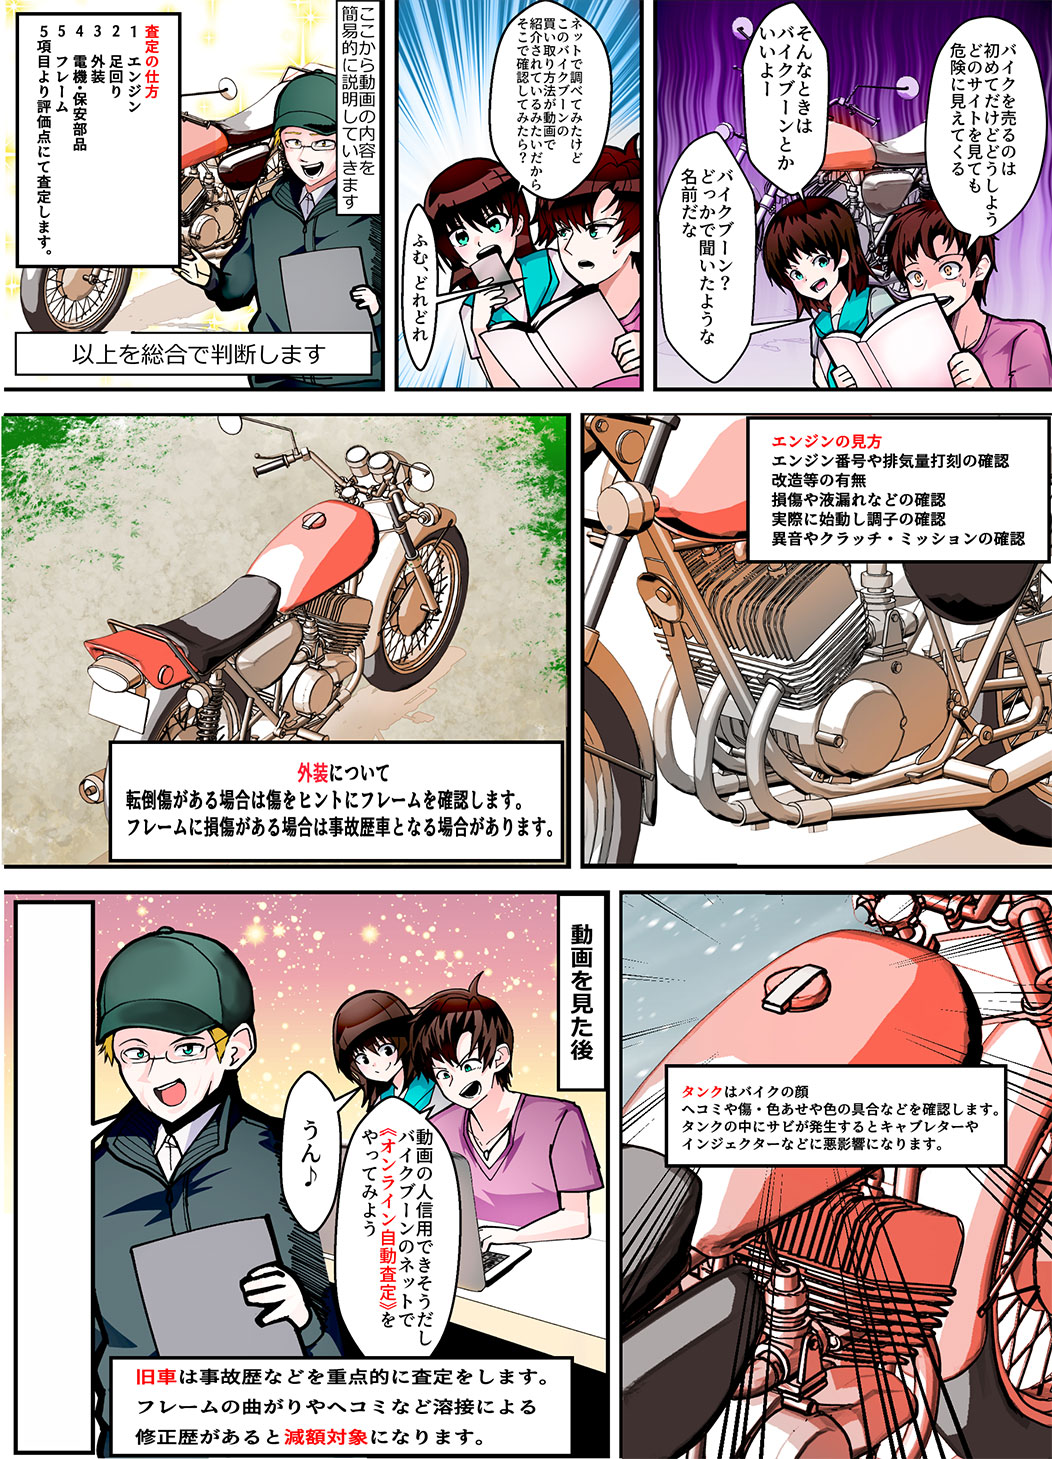 Z750RS 初期ロッド買取漫画